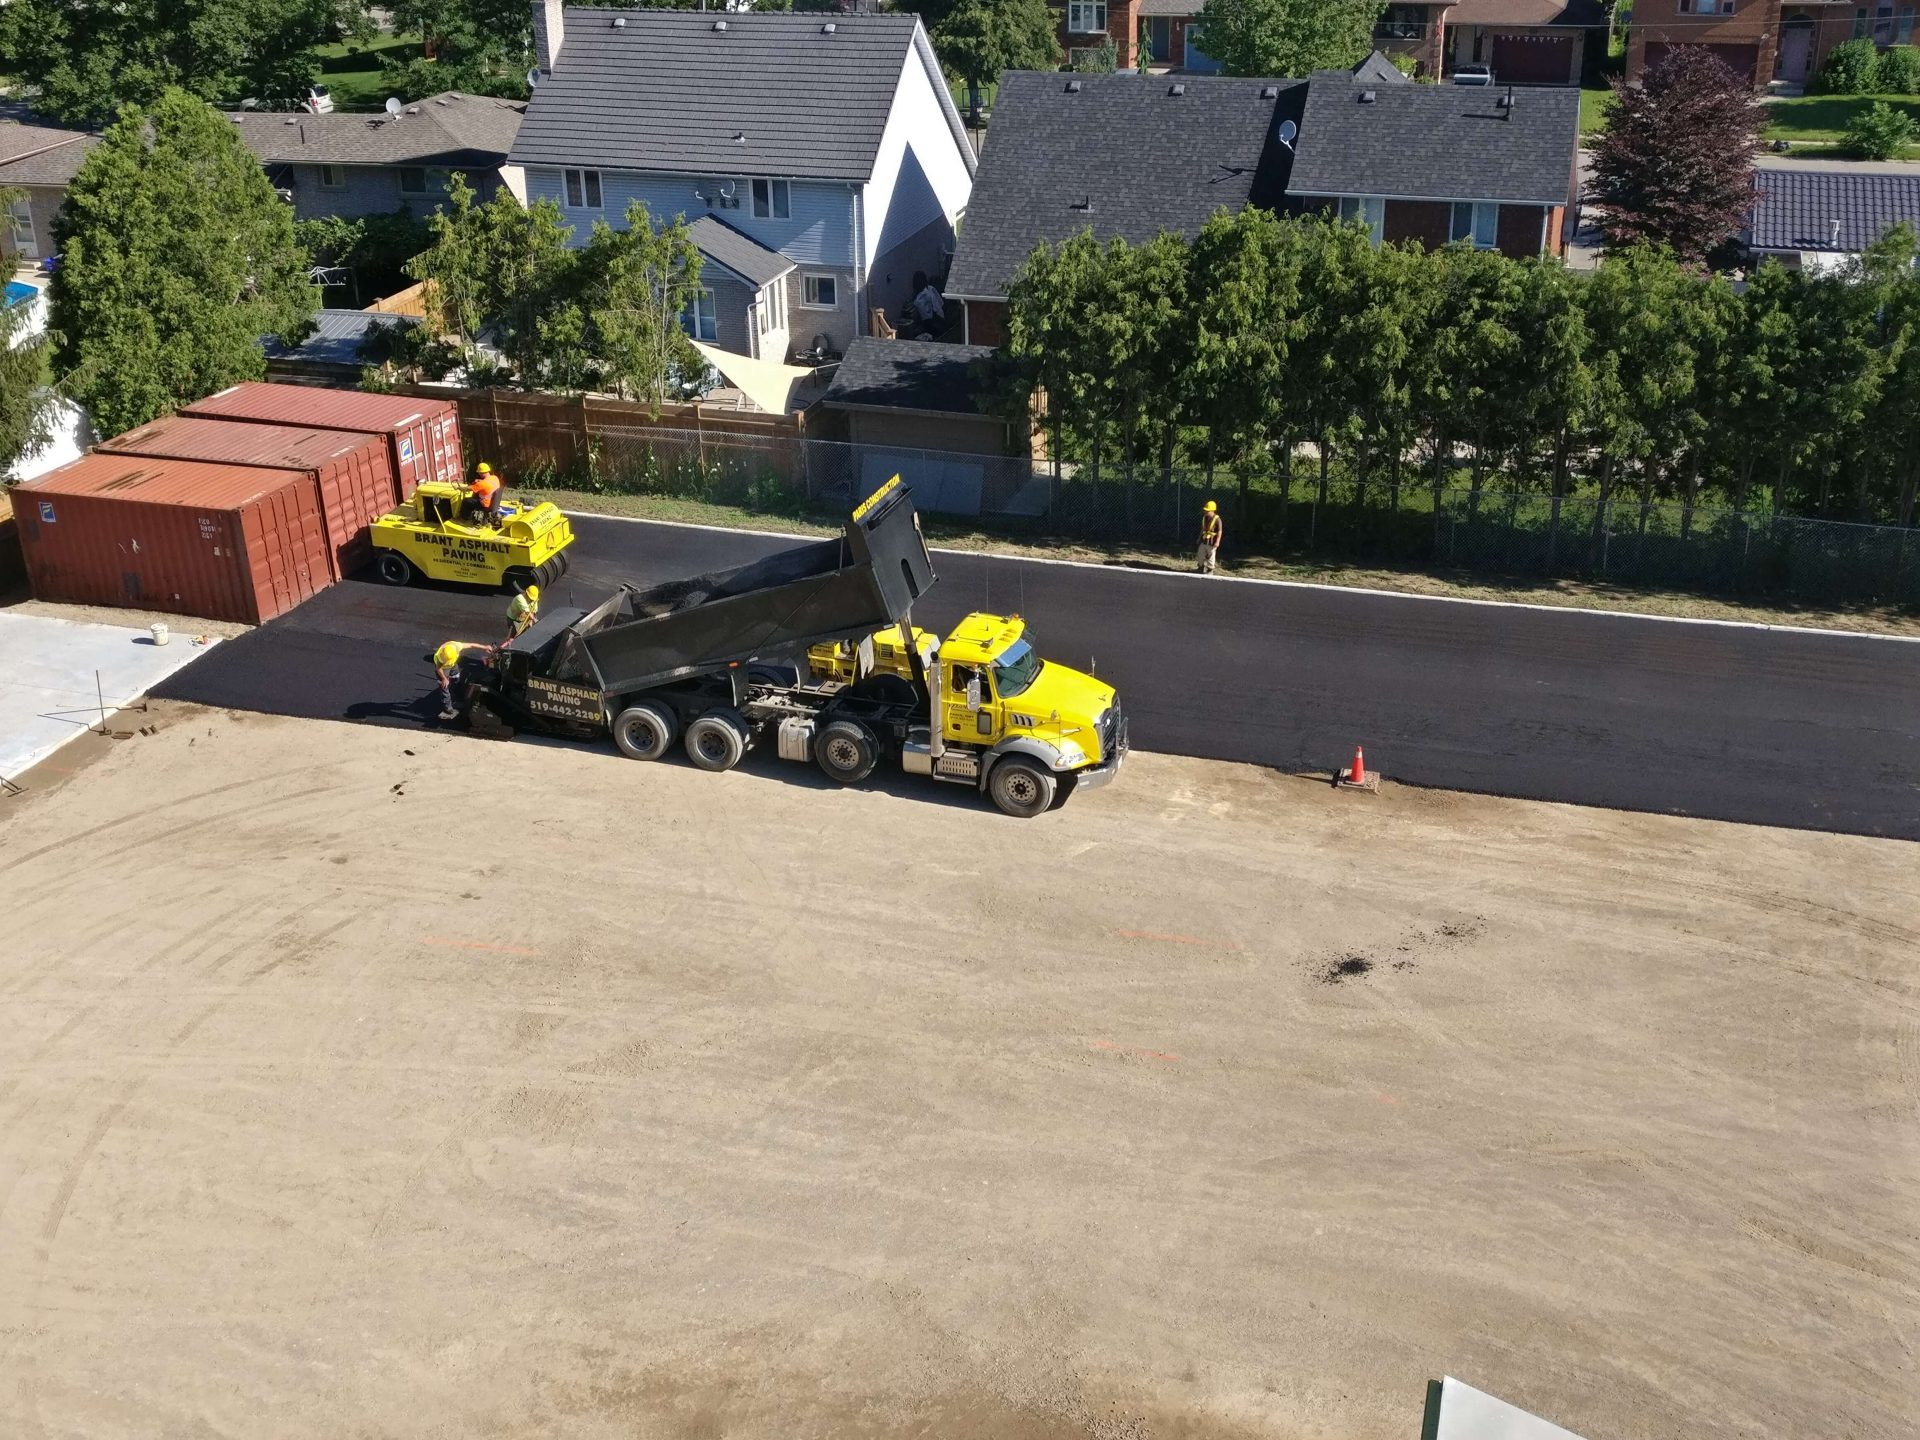 Paved asphalt strip in back parking lot